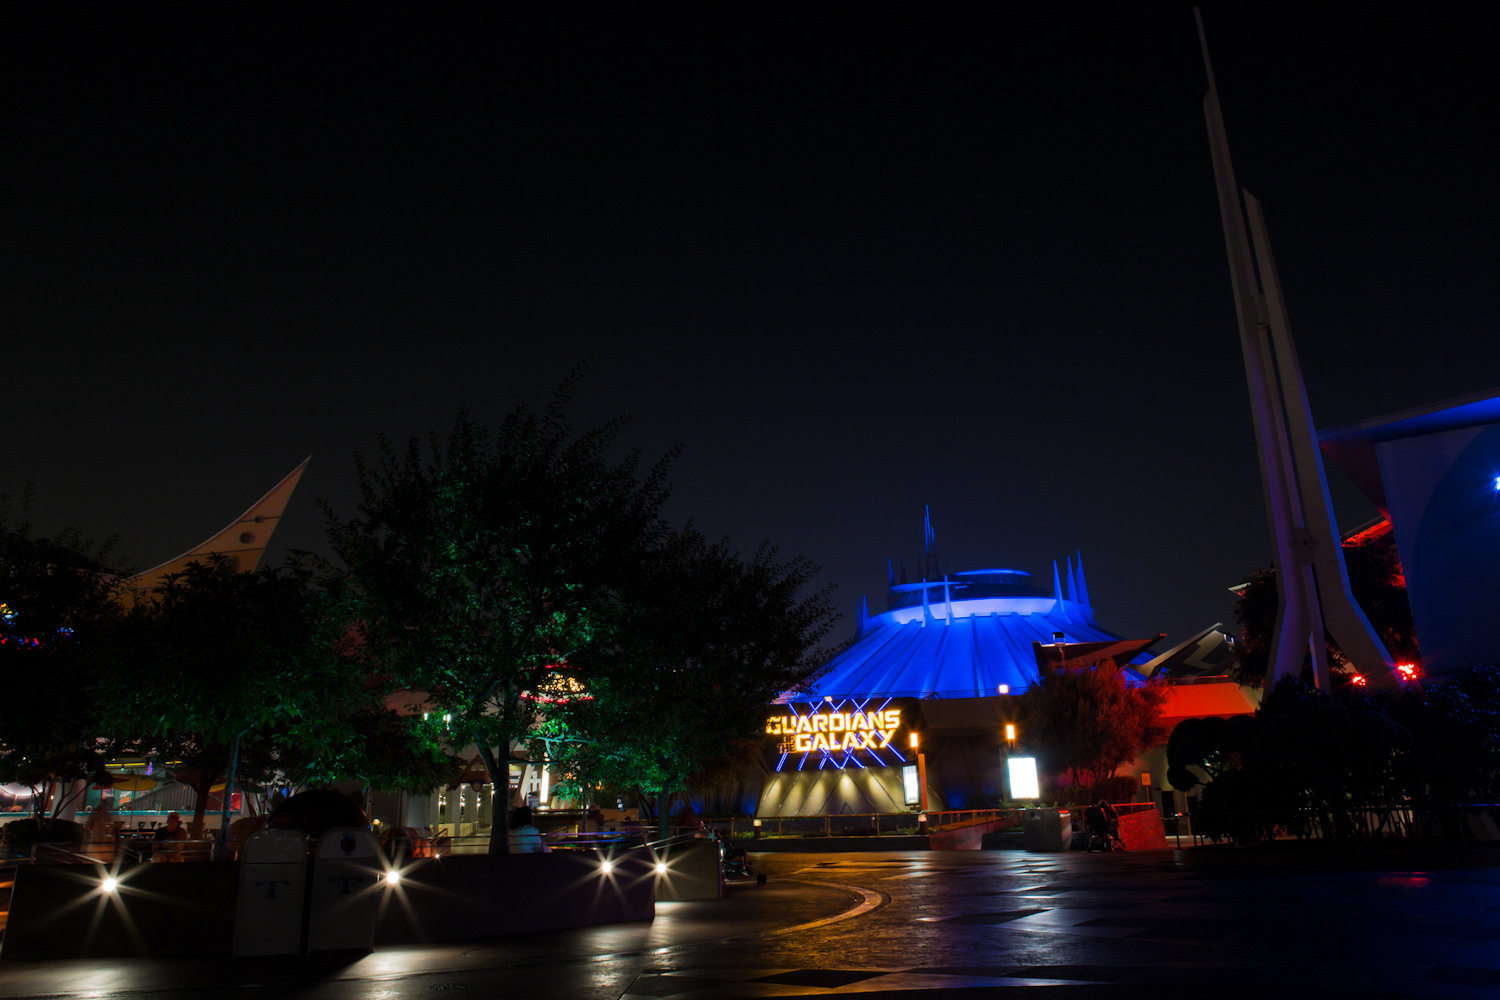 Disneyland - Tomorrowland